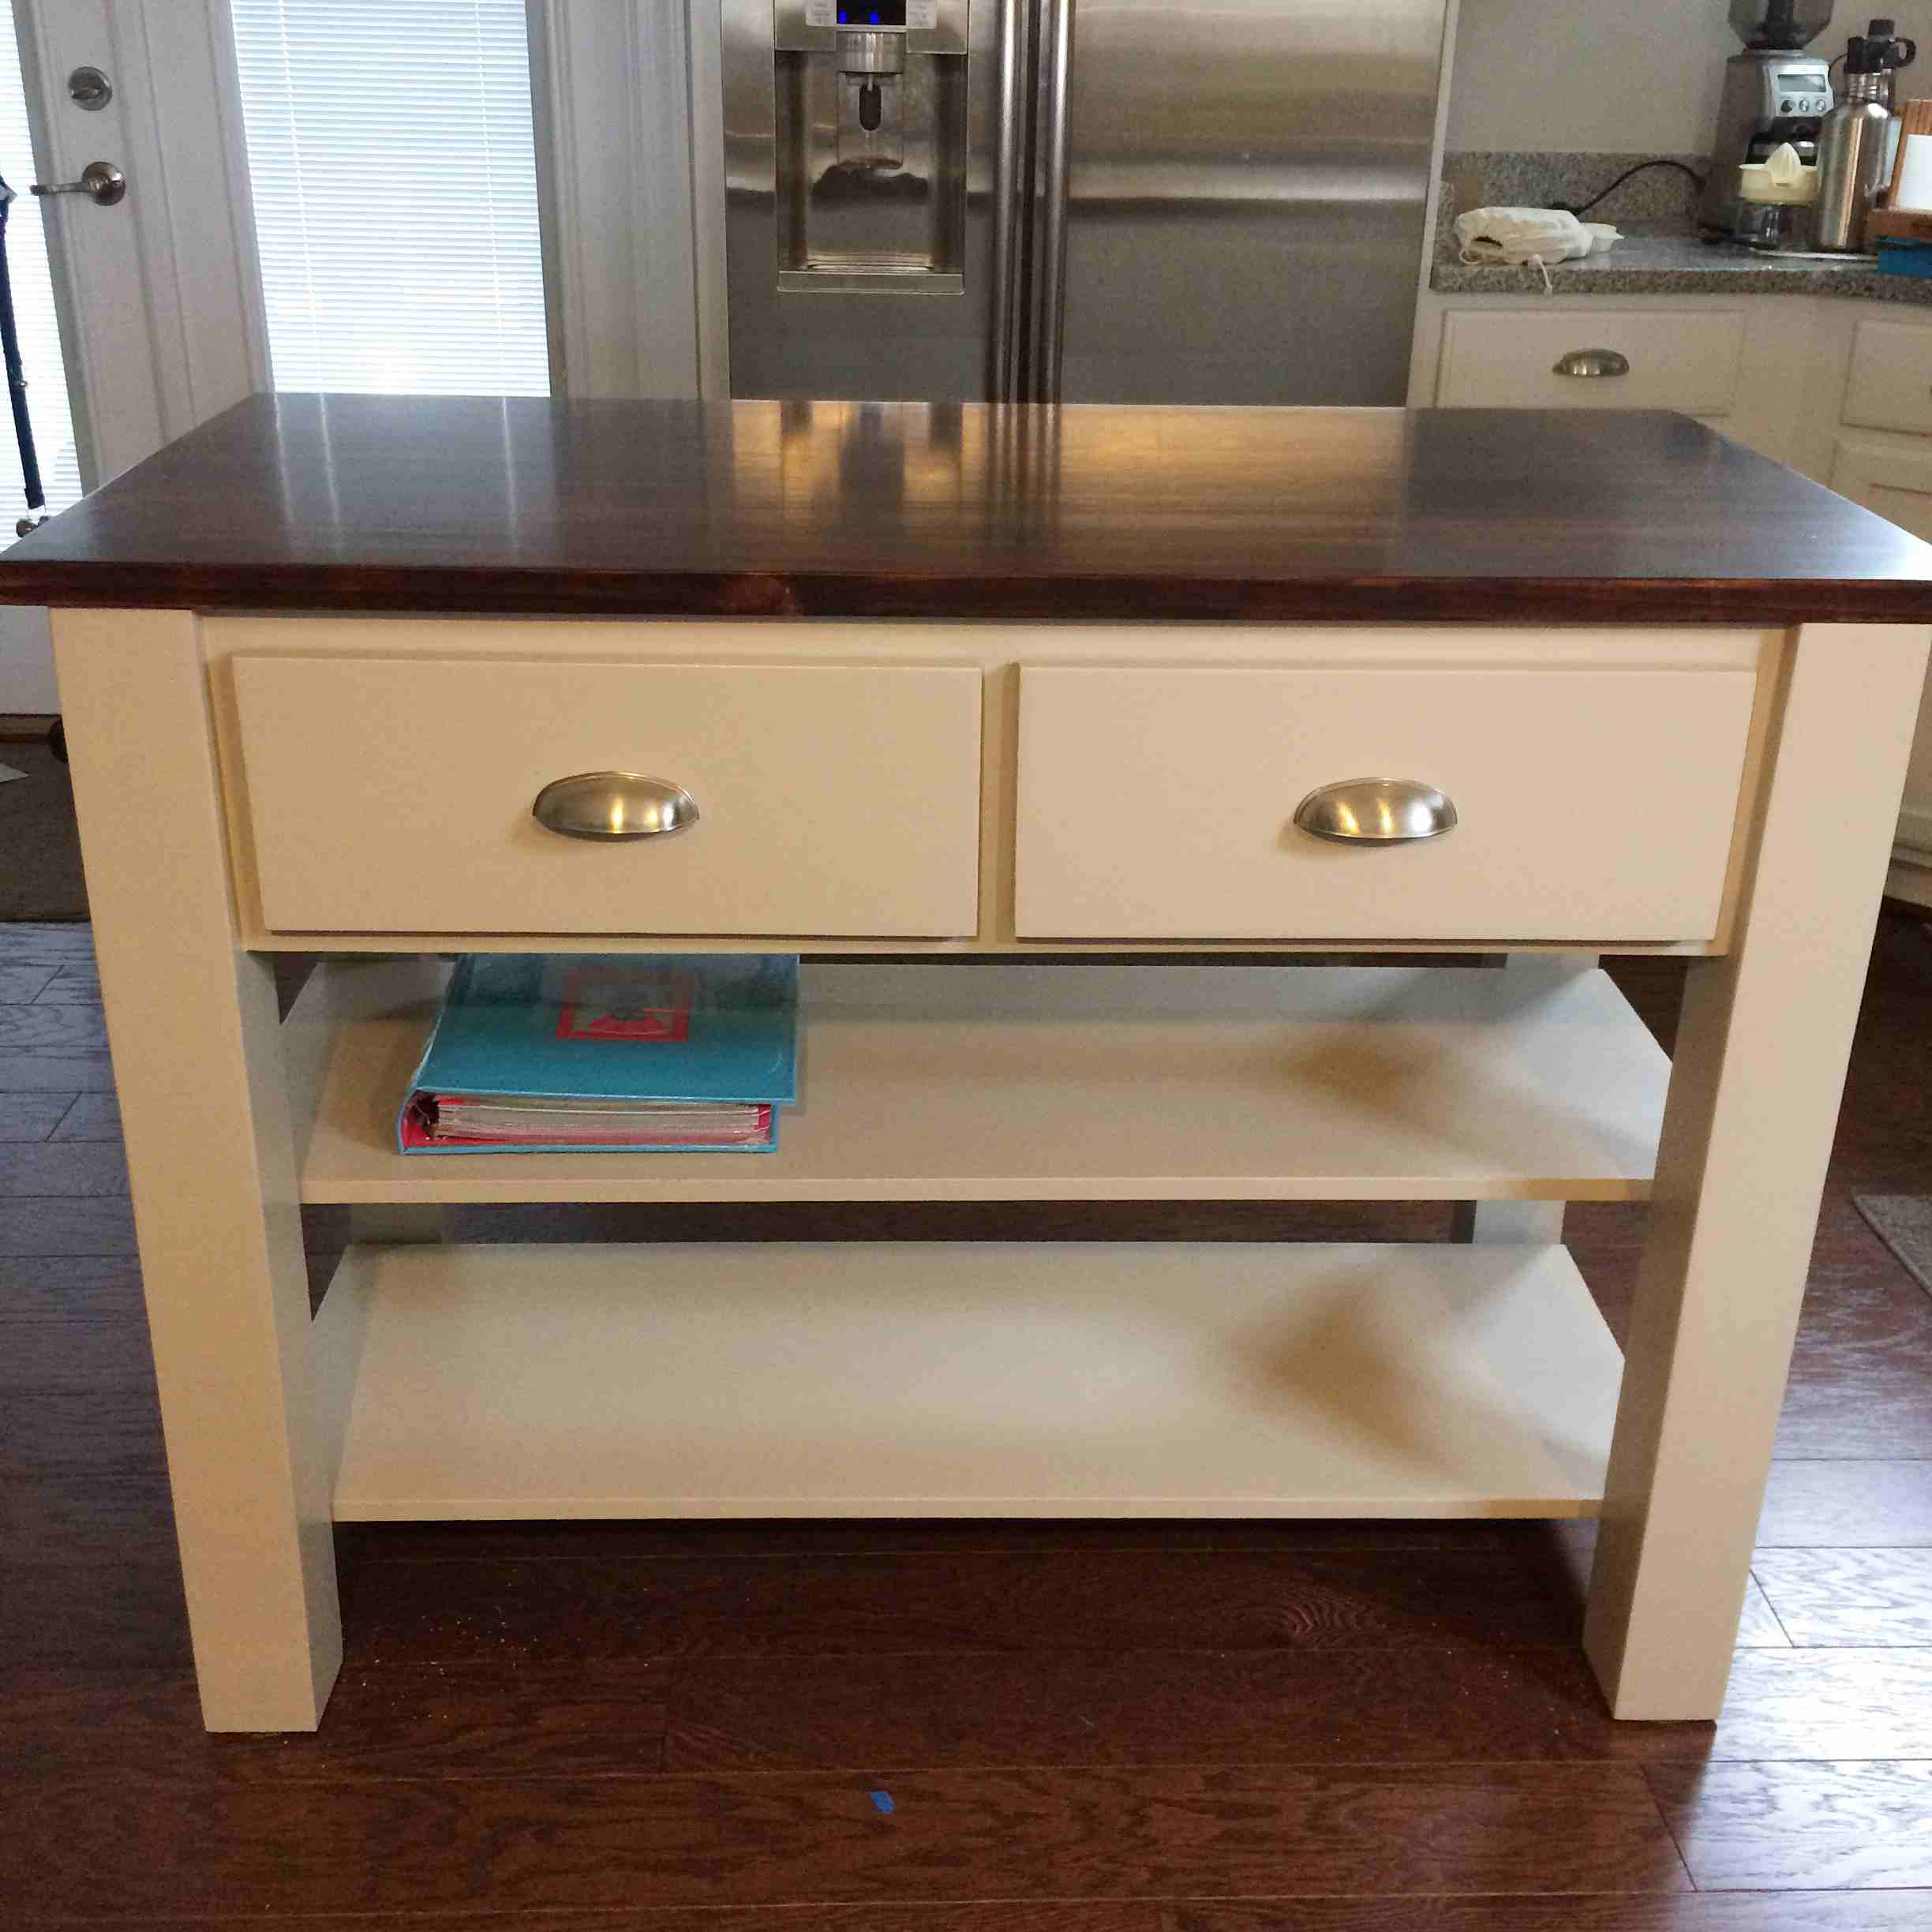 A Kitchen Island With Two Drawers And Shelves